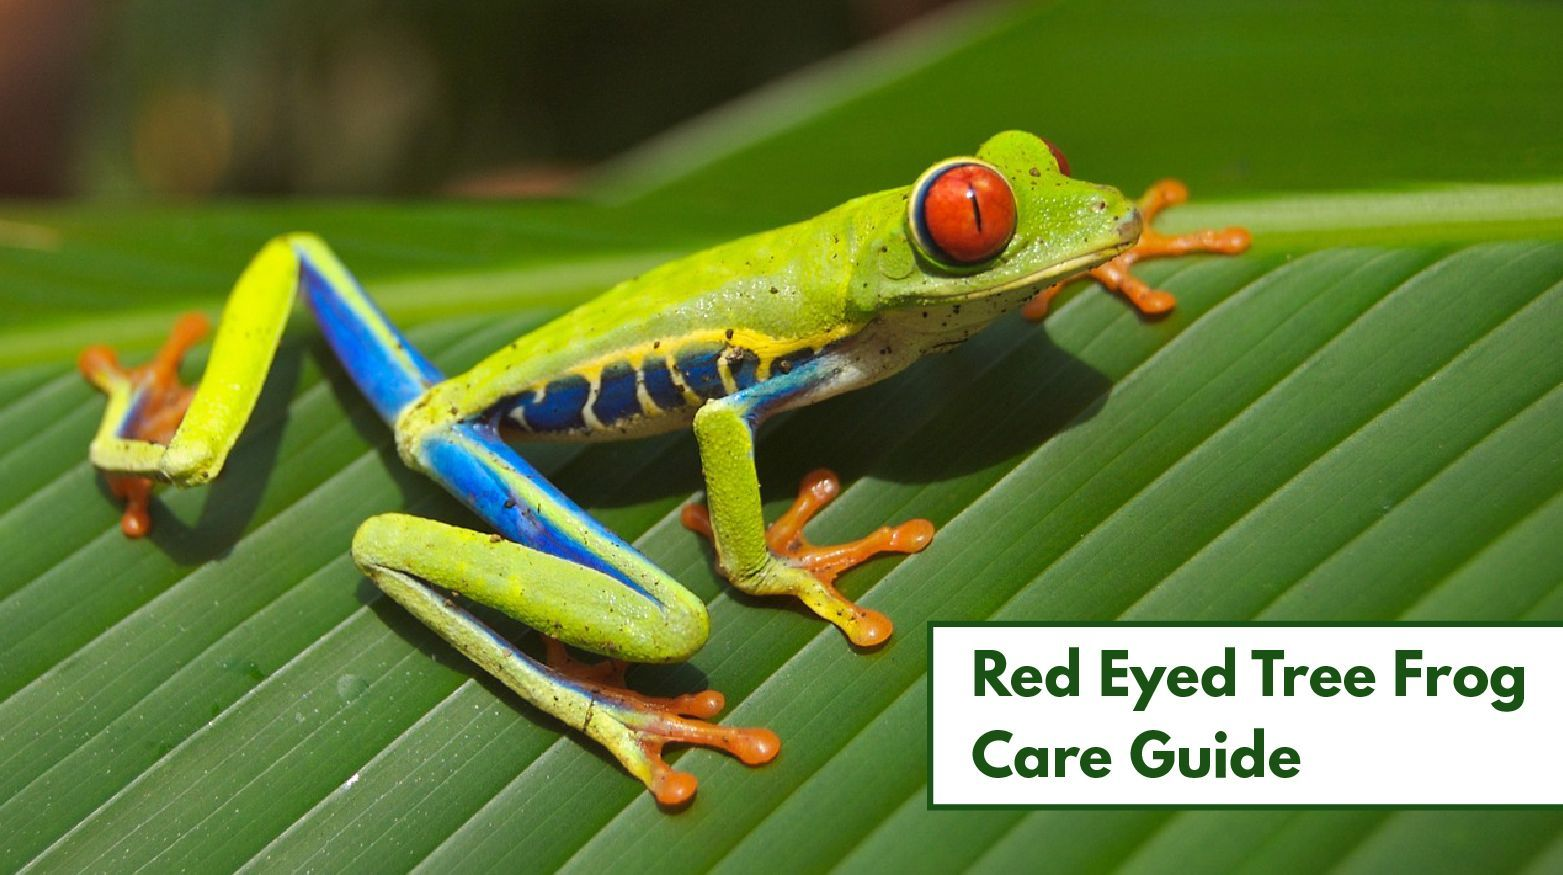 Red Eyed Tree Frog Care (The Complete Habitat, Diet, and